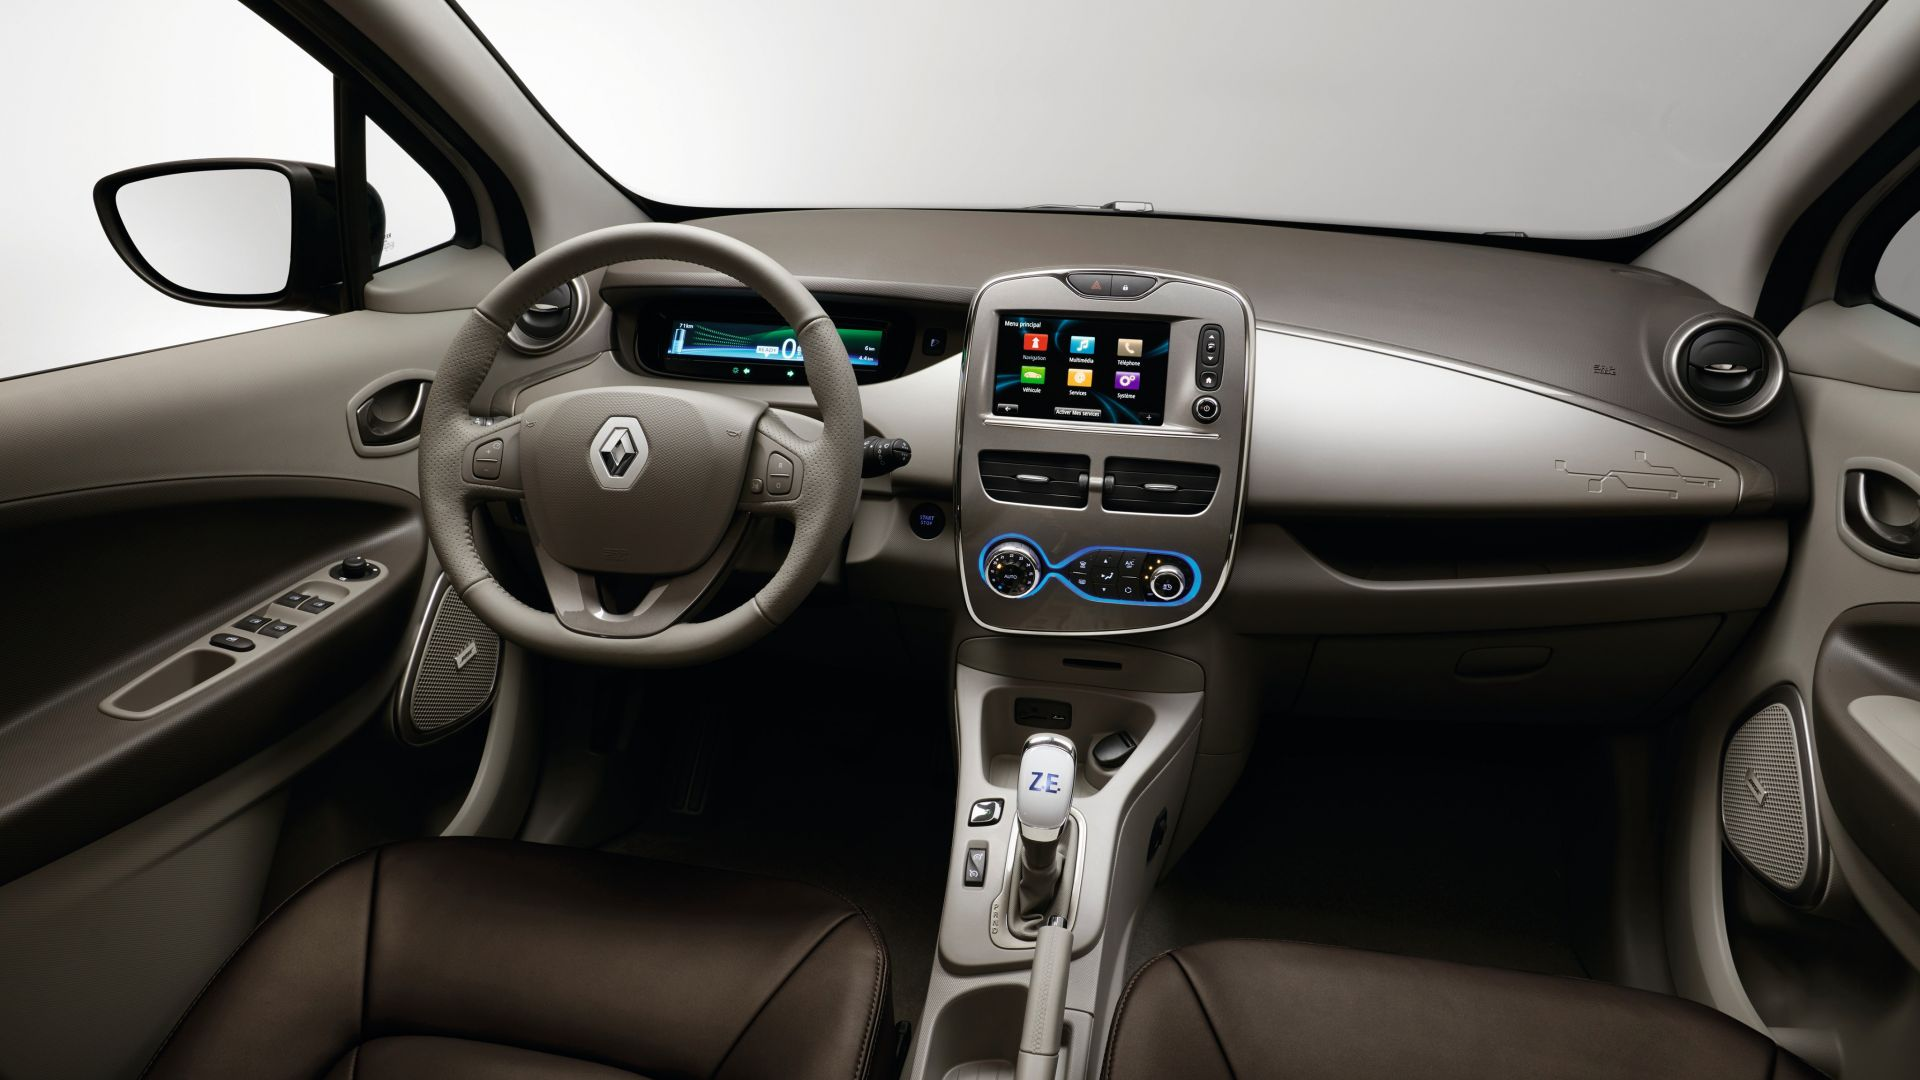 Renault Zoe Z.E., Swiss Edition, Geneva Auto Show 2016, electric car, interior (horizontal)